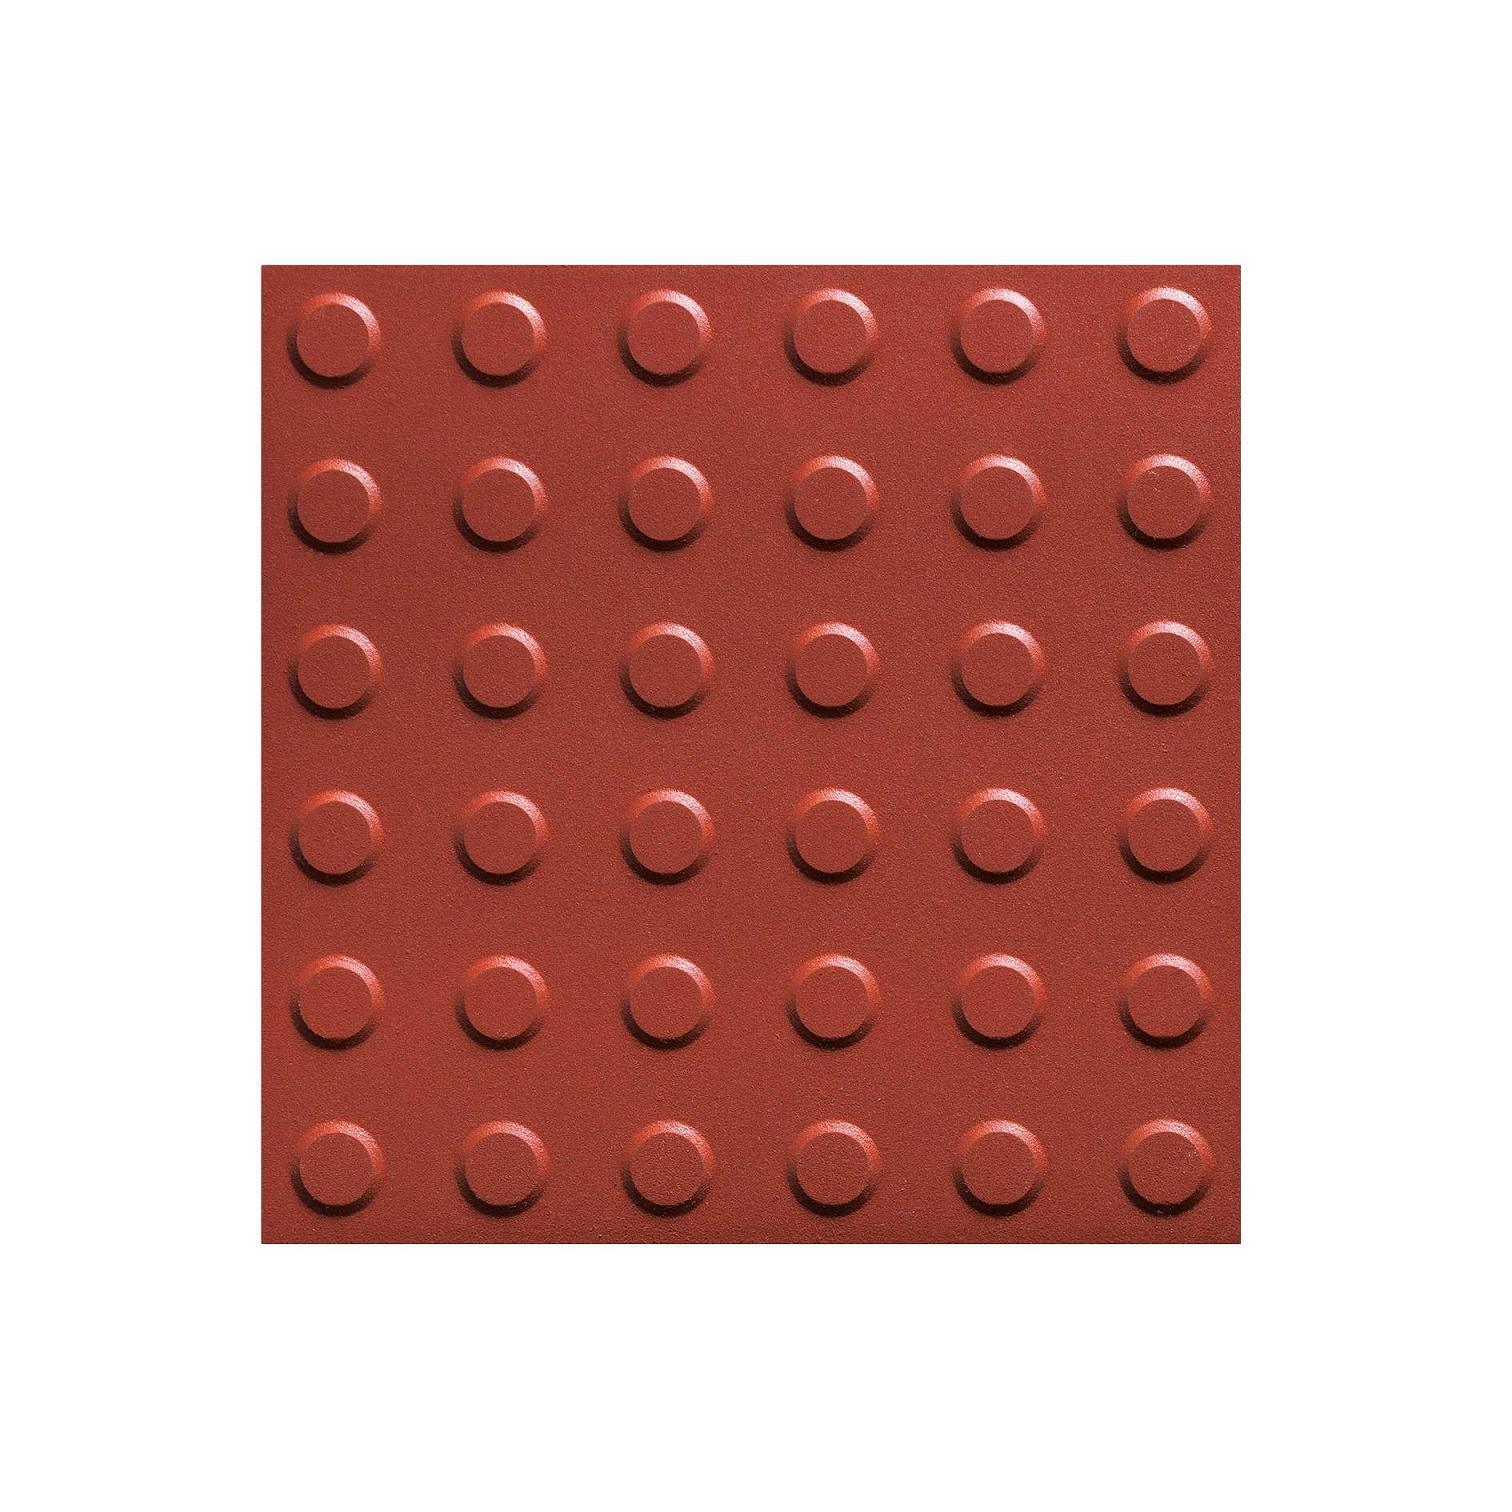 China Red Clay Brick Tile Square Ceramic Terracotta Tiles For Floor